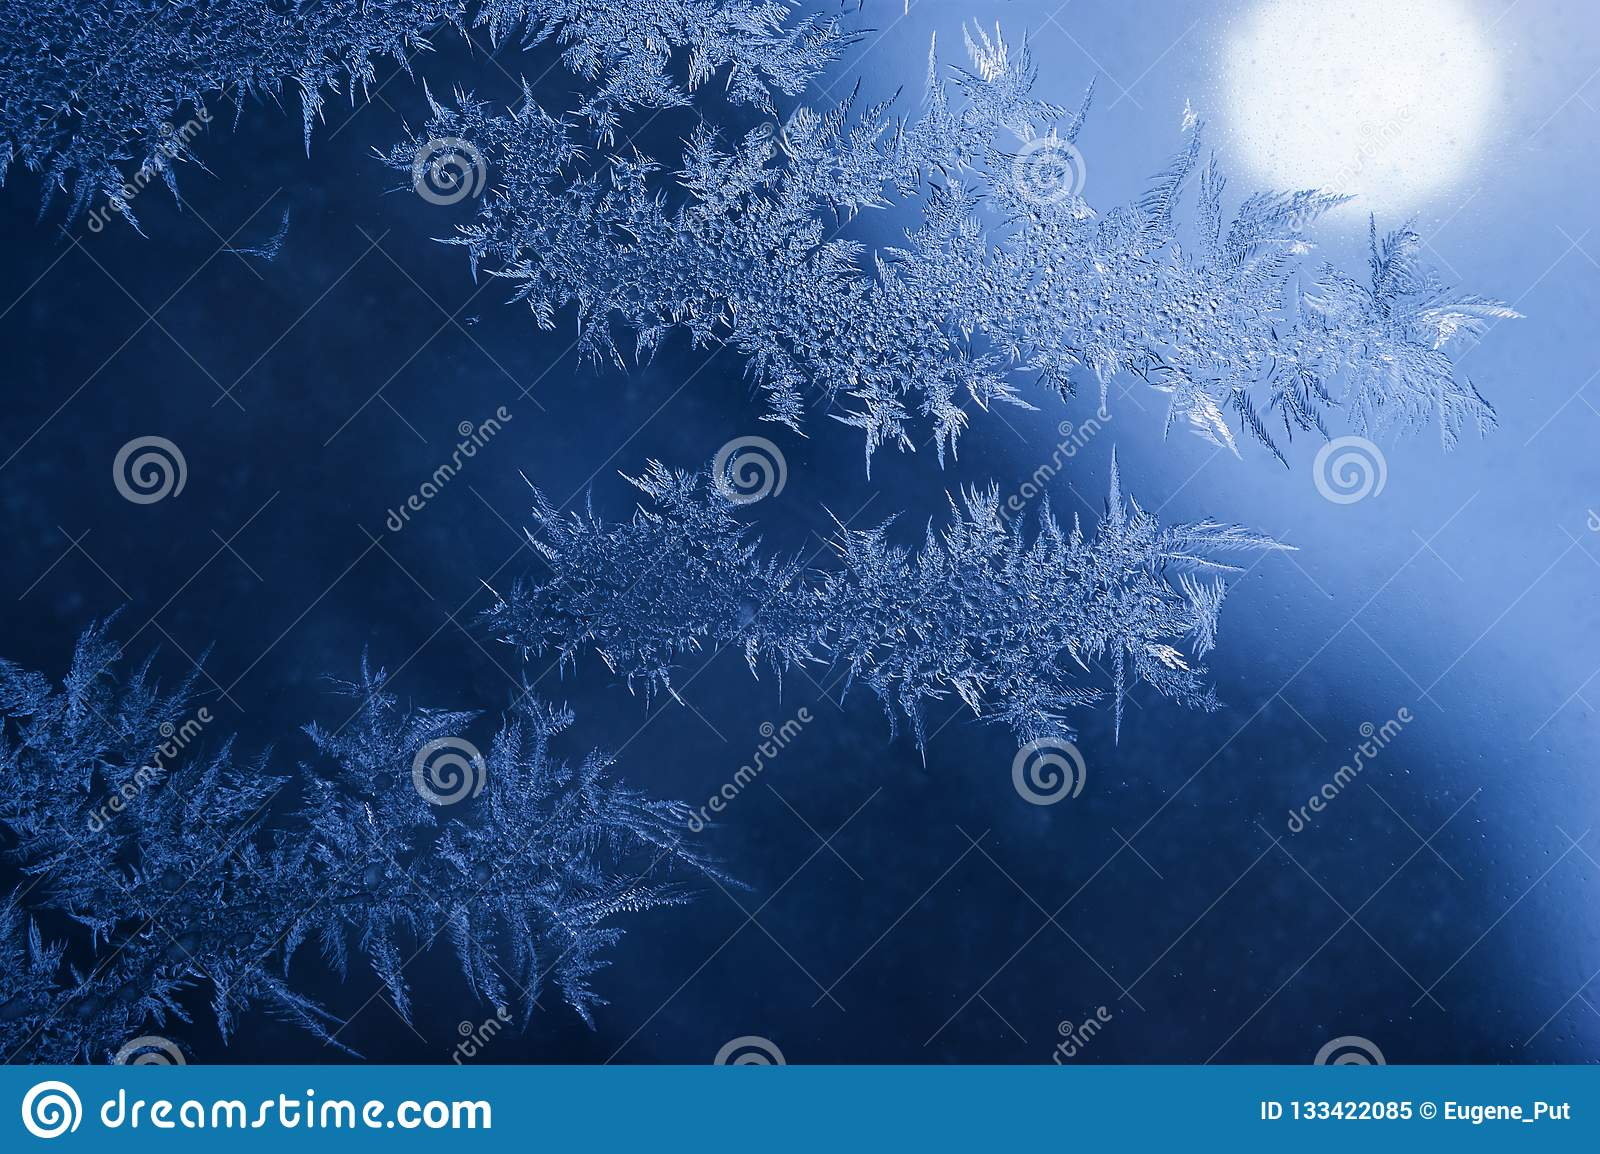 Winter Holidays Season Fantasy World Concept: Macro Image of Natural Ice Crystals Patterns on a Blue Frosted Window Pane With Sun